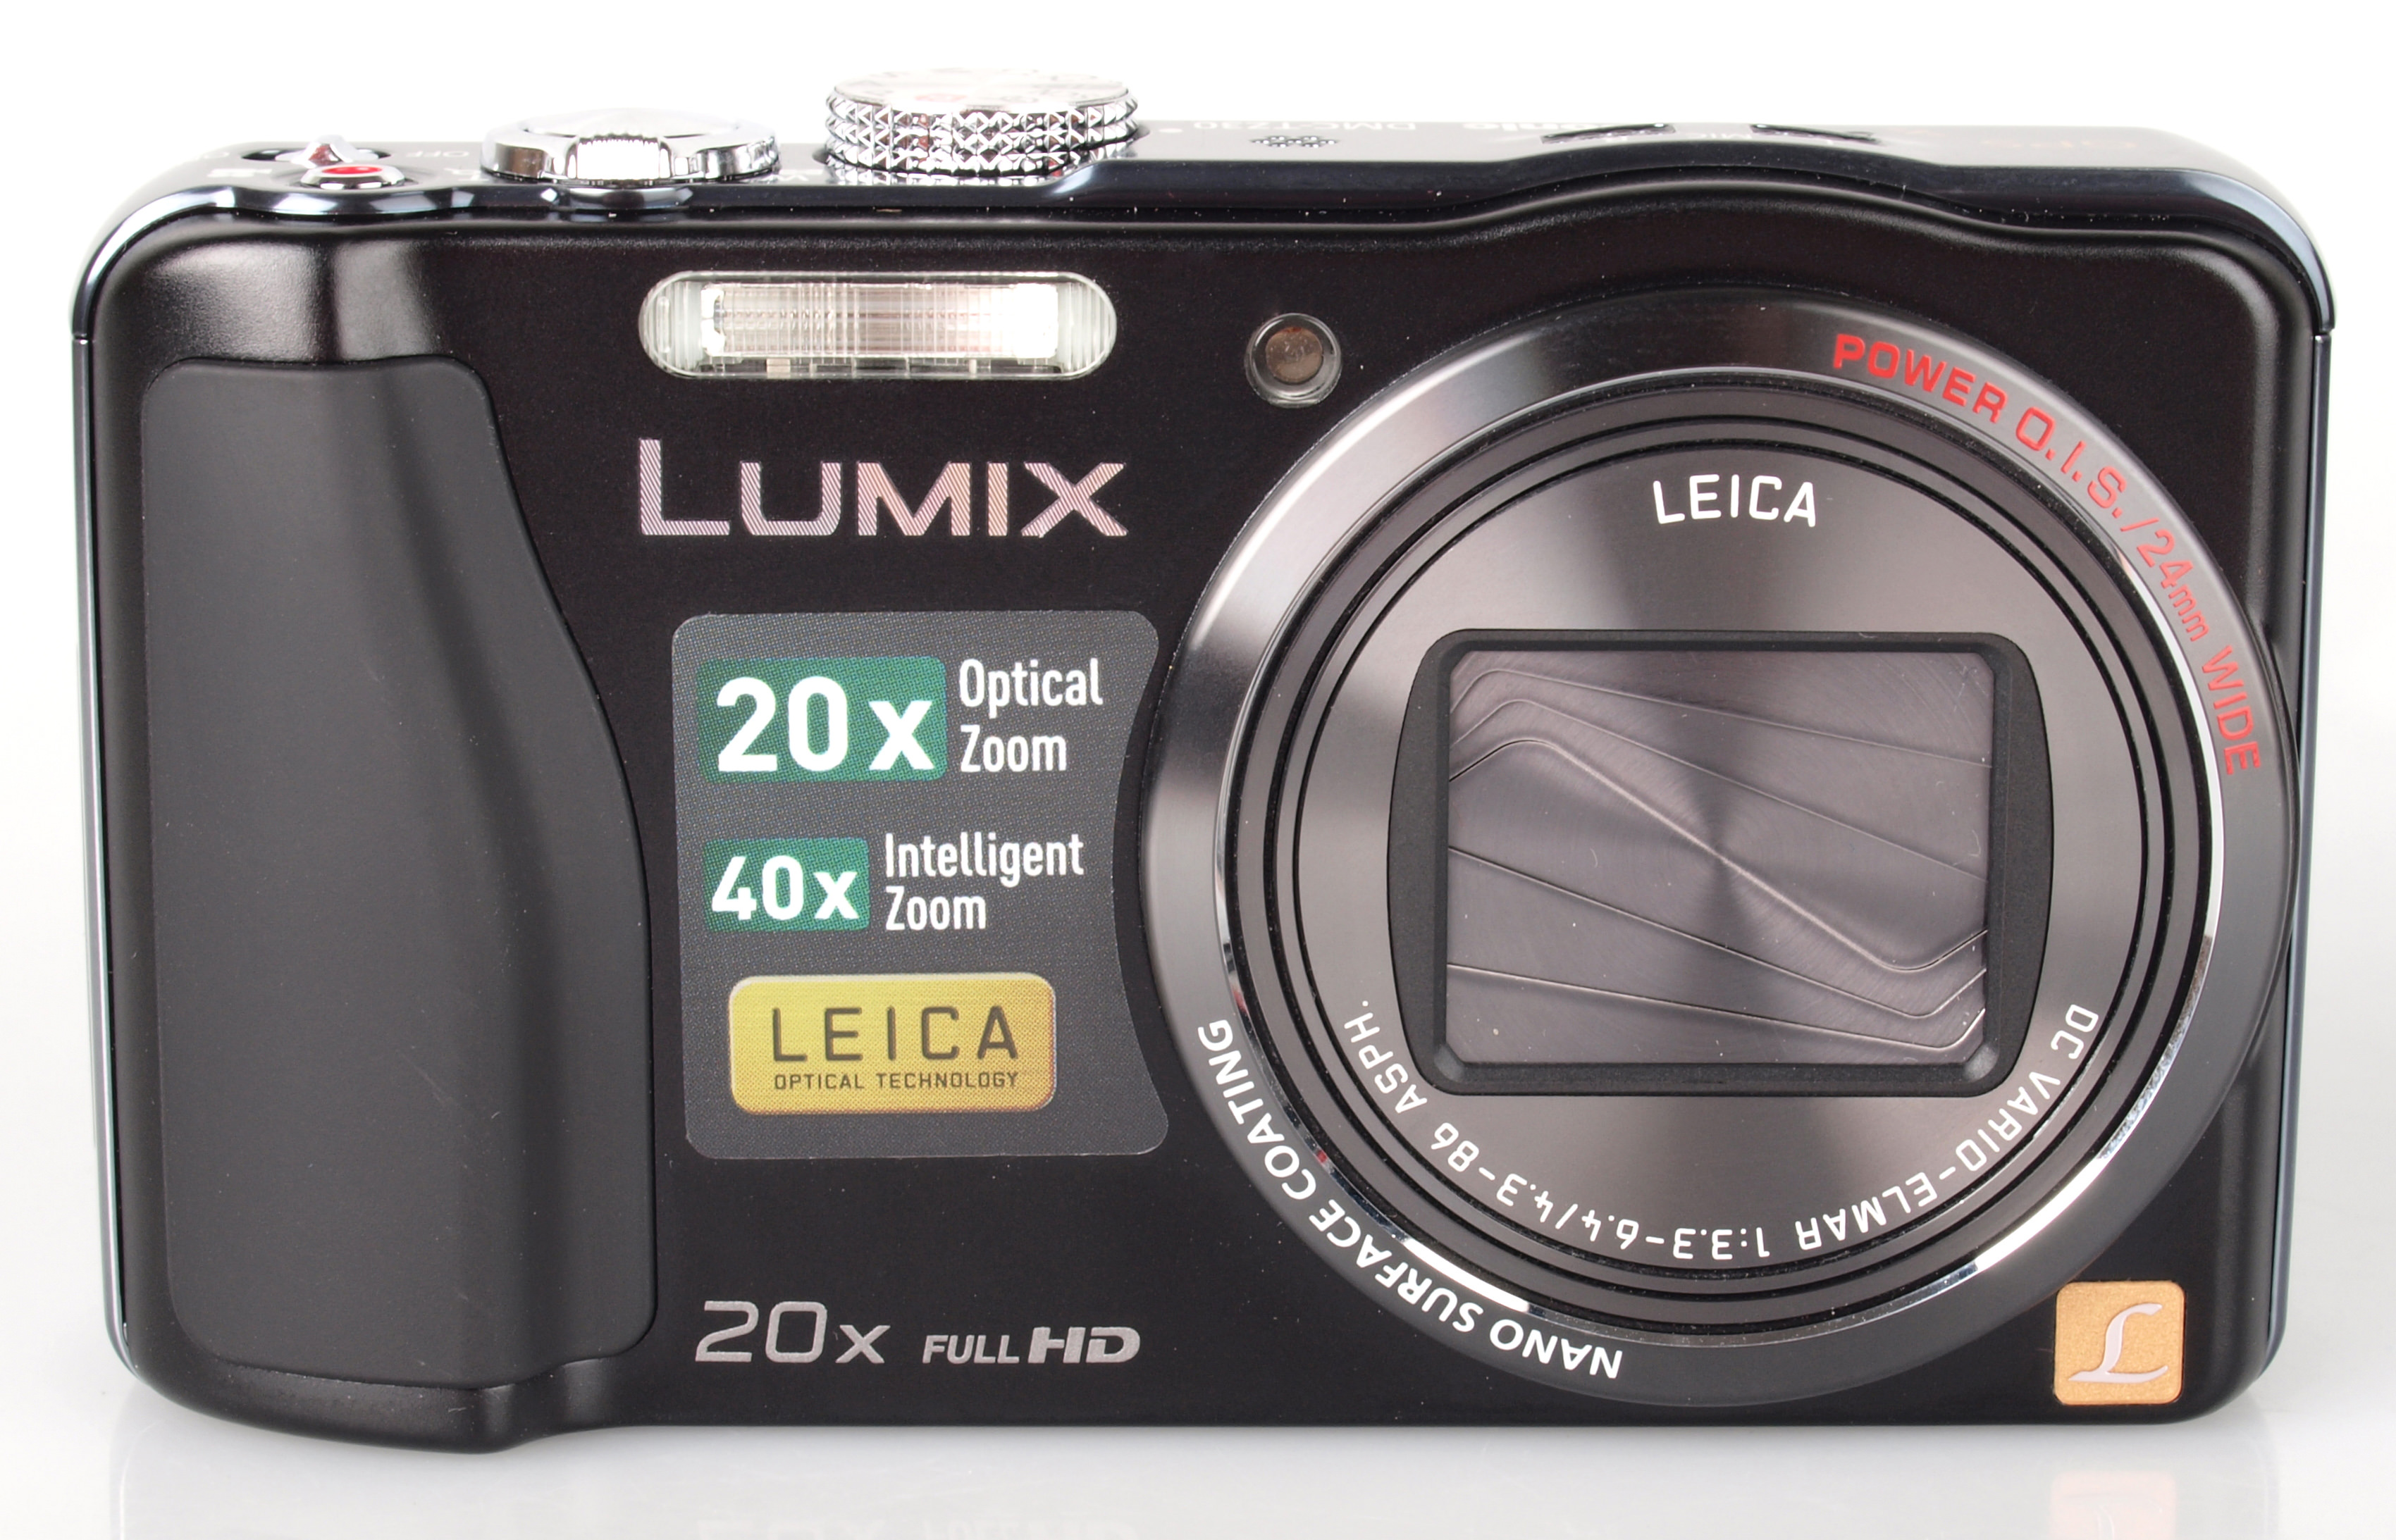 http://www.ephotozine.com/articles/panasonic-lumix-dmc-tz30-pocket-zoom-review-19048/images/highres-panasoniclumixtz30_1335878829.jpg